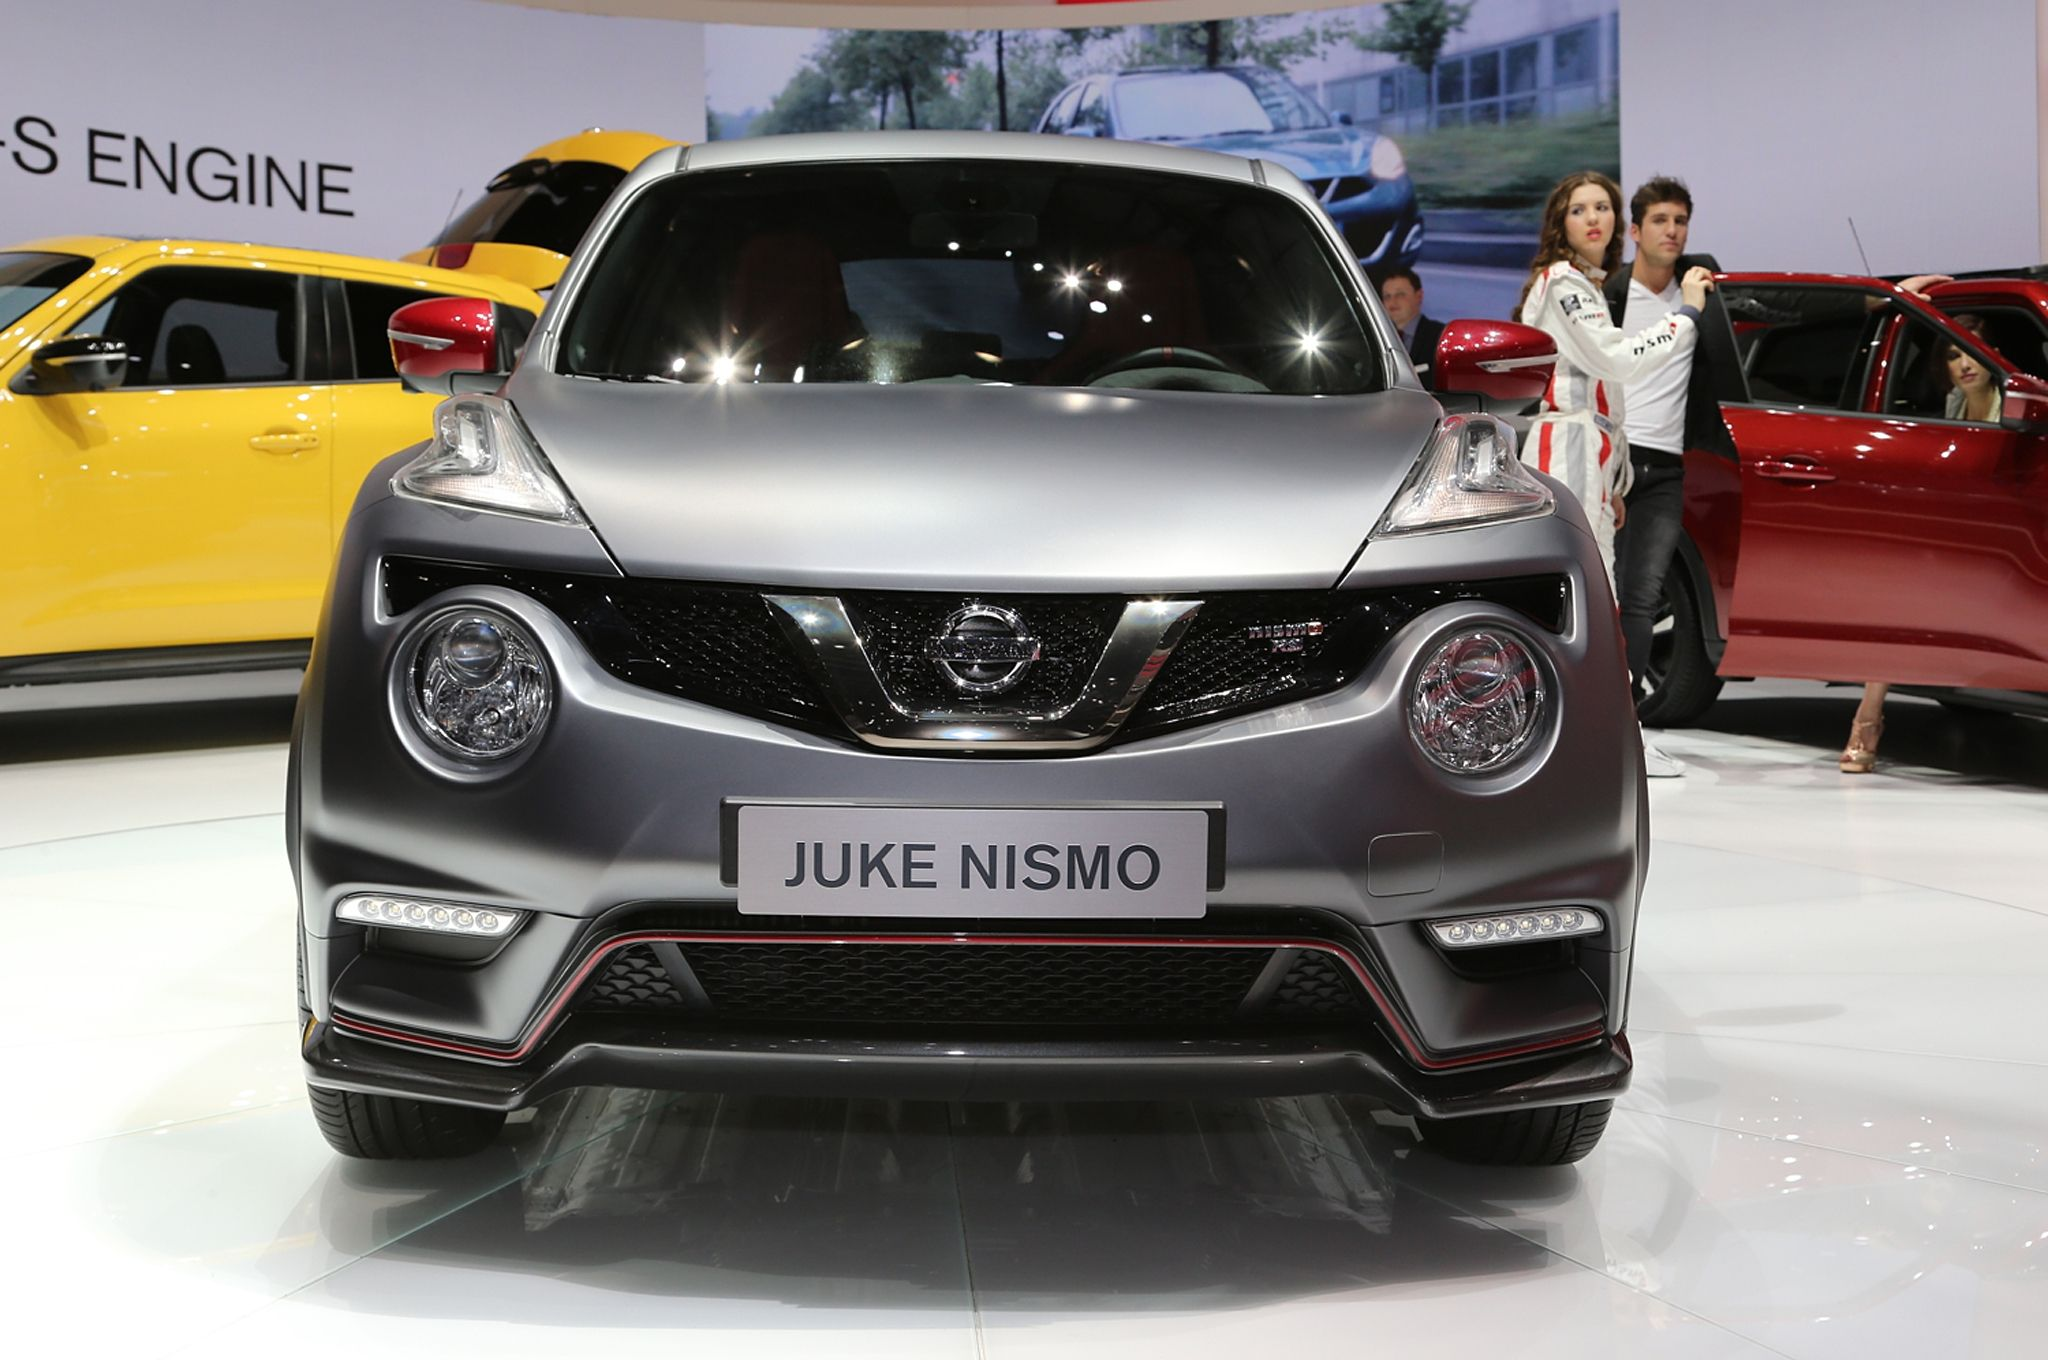 2017 Nissan Juke Nismo Engine And Price   Http://www.abbeyallenart.